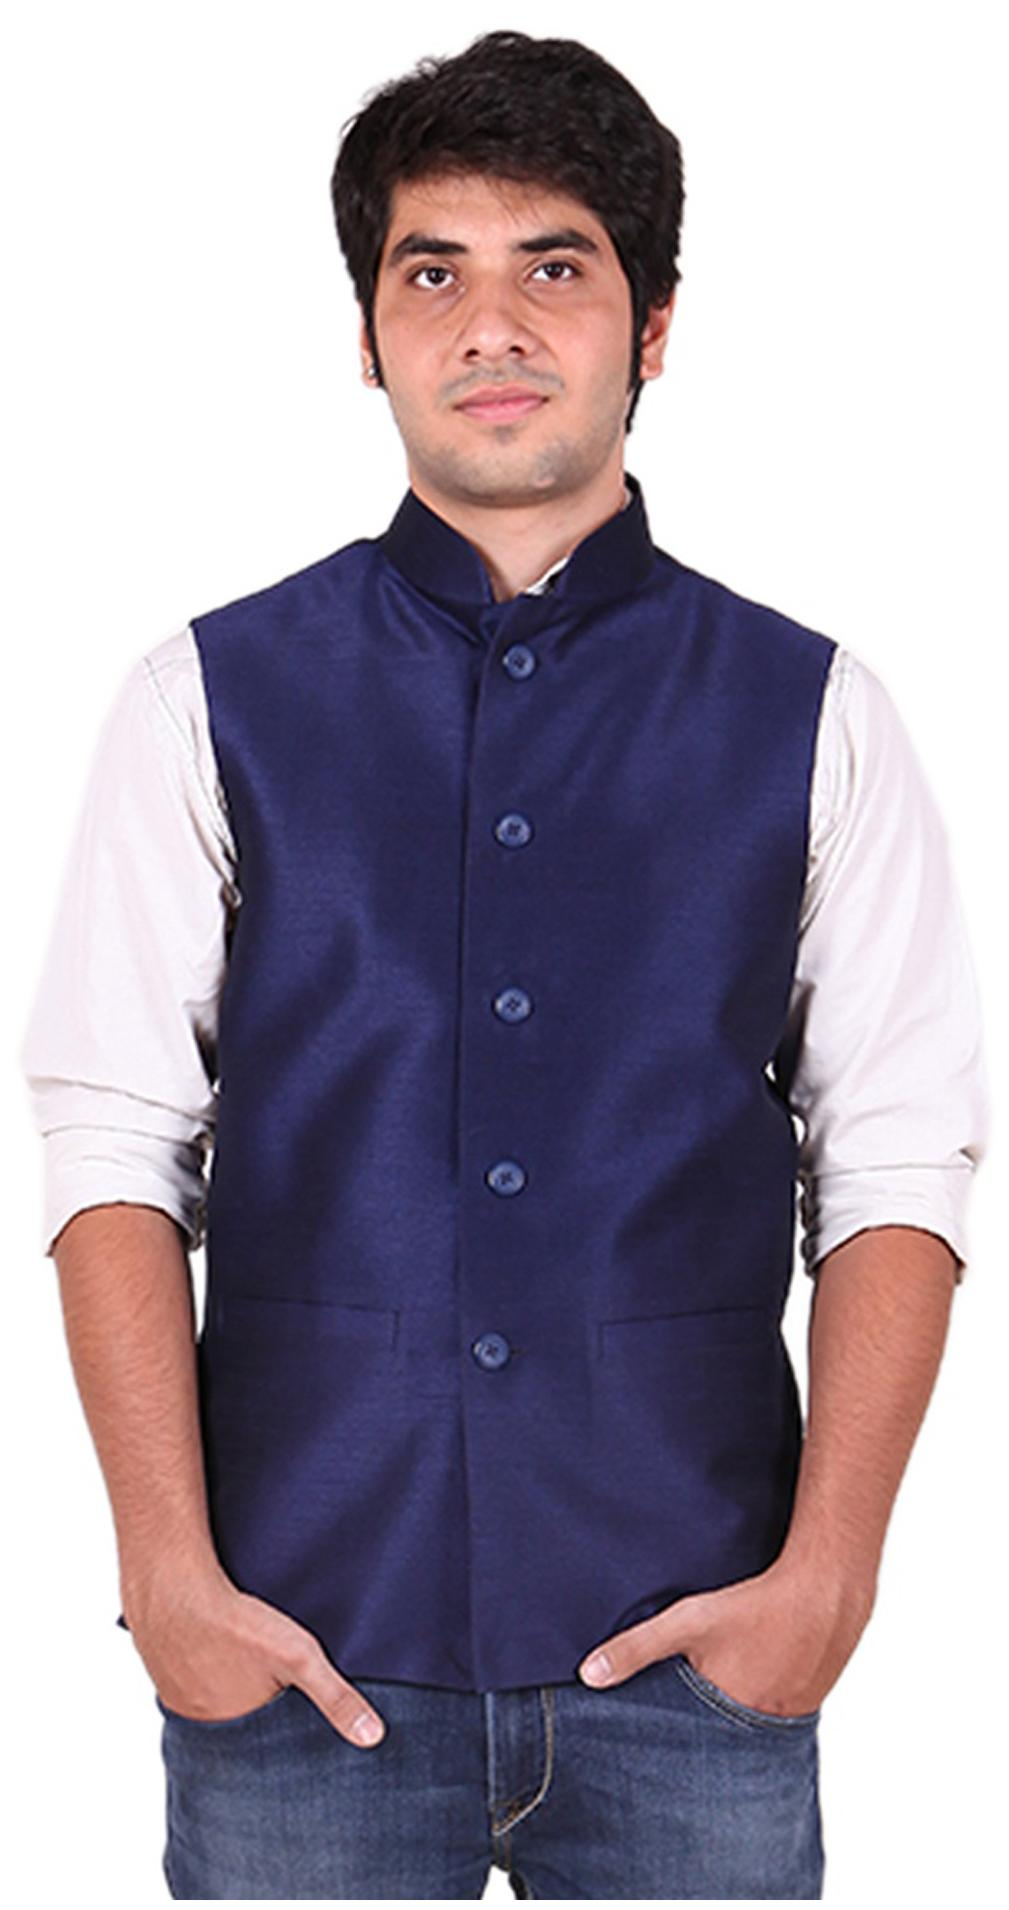 https://assetscdn1.paytm.com/images/catalog/product/A/AP/APPROYAL-KURTA-MR-T178778BC406E63/a_0.jpg